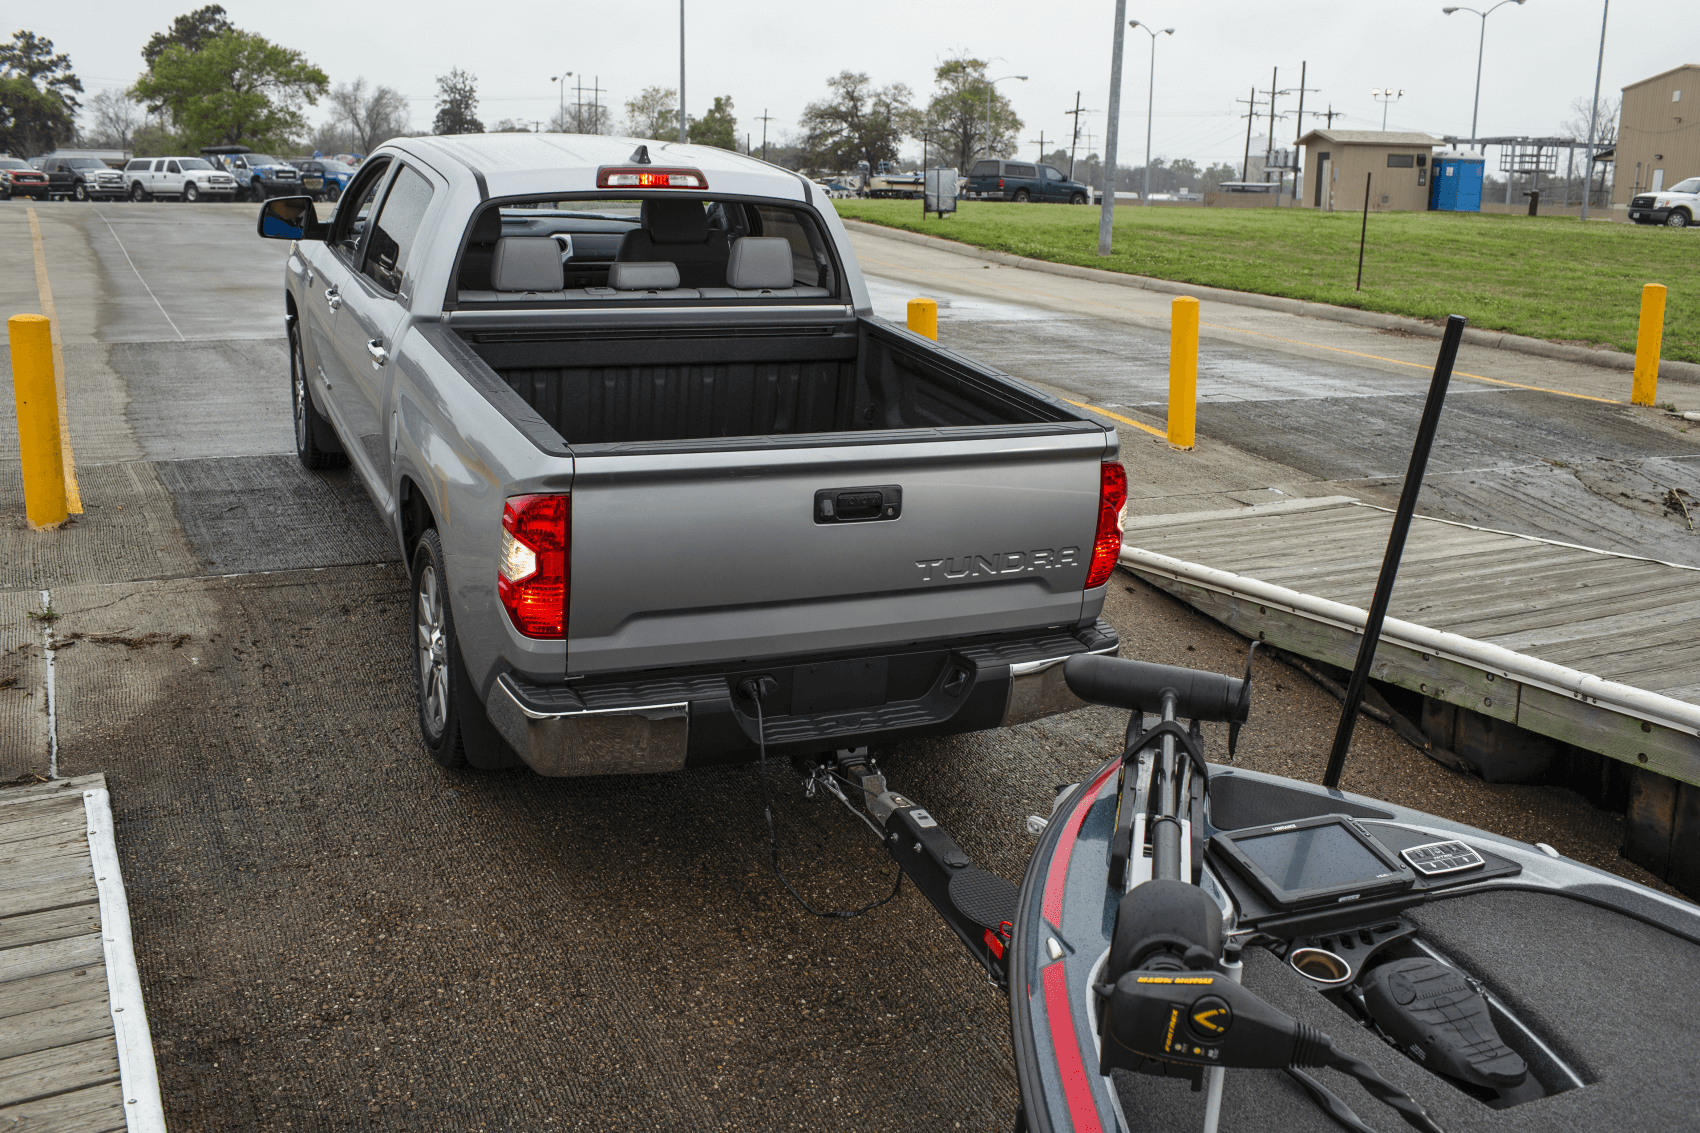 2021 Toyota Tundra Towing Boat Silver Dock